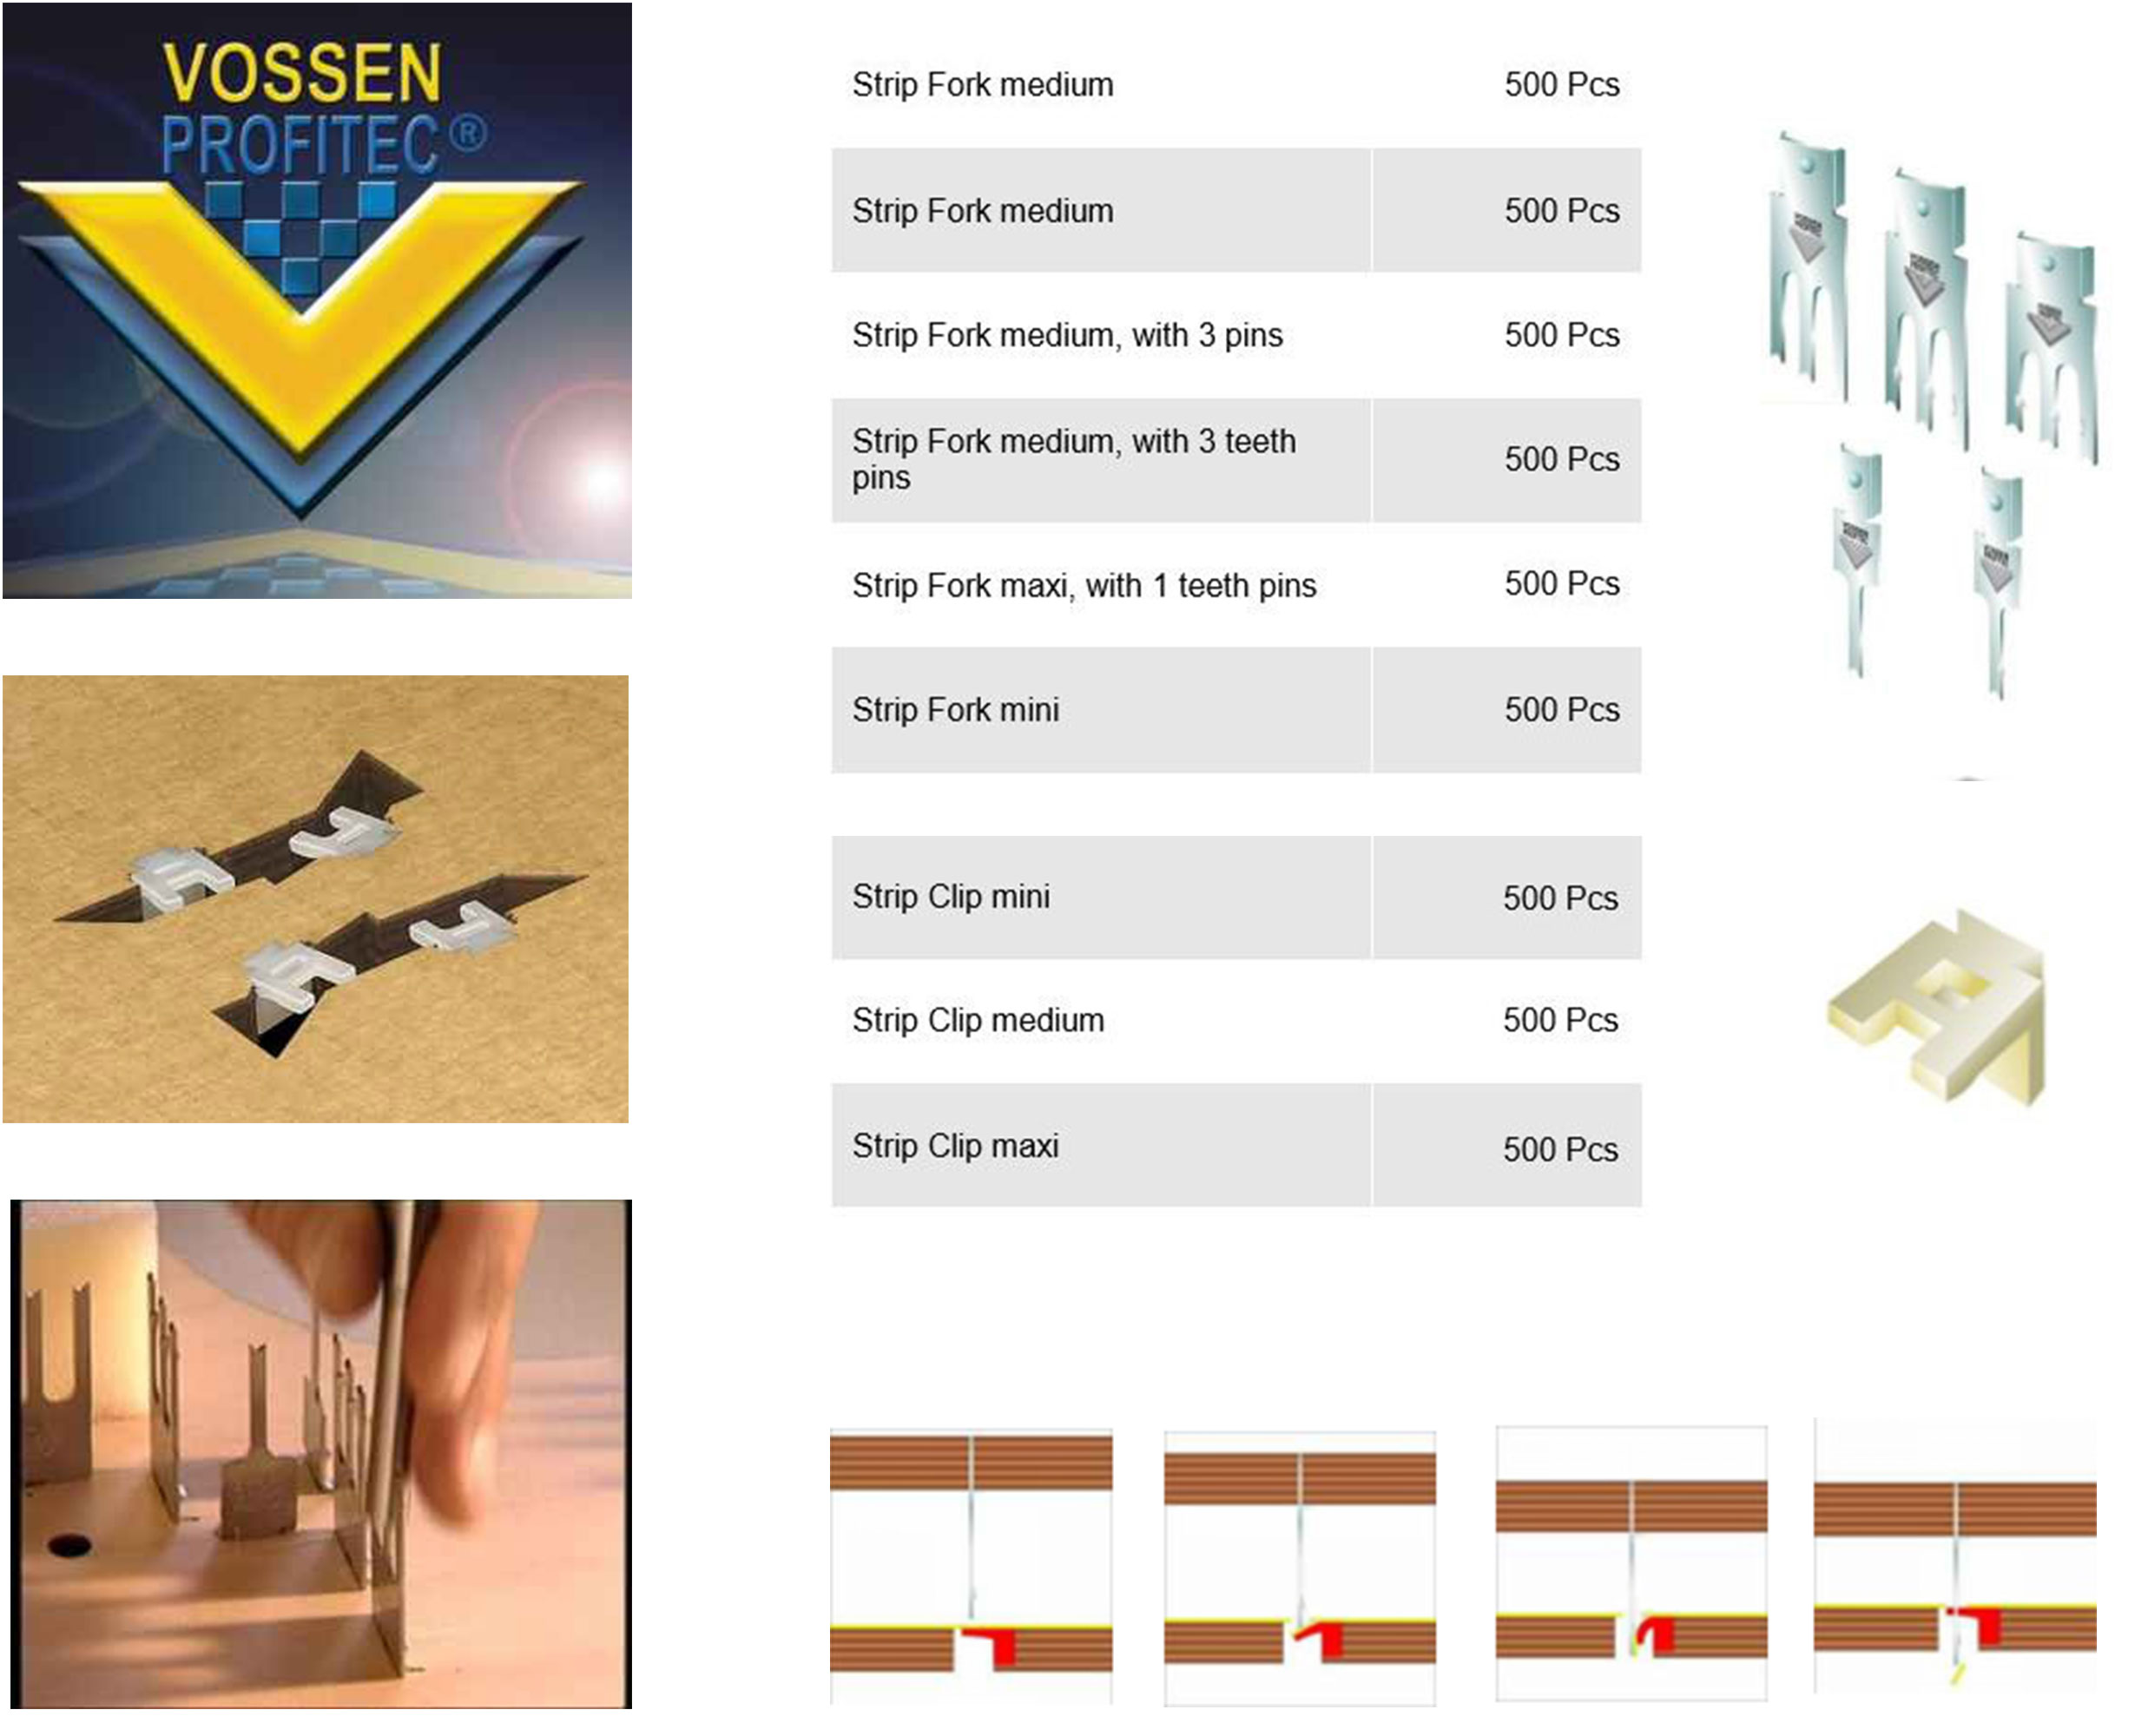 Vossen Watson Waste Cleaning Products in Germany